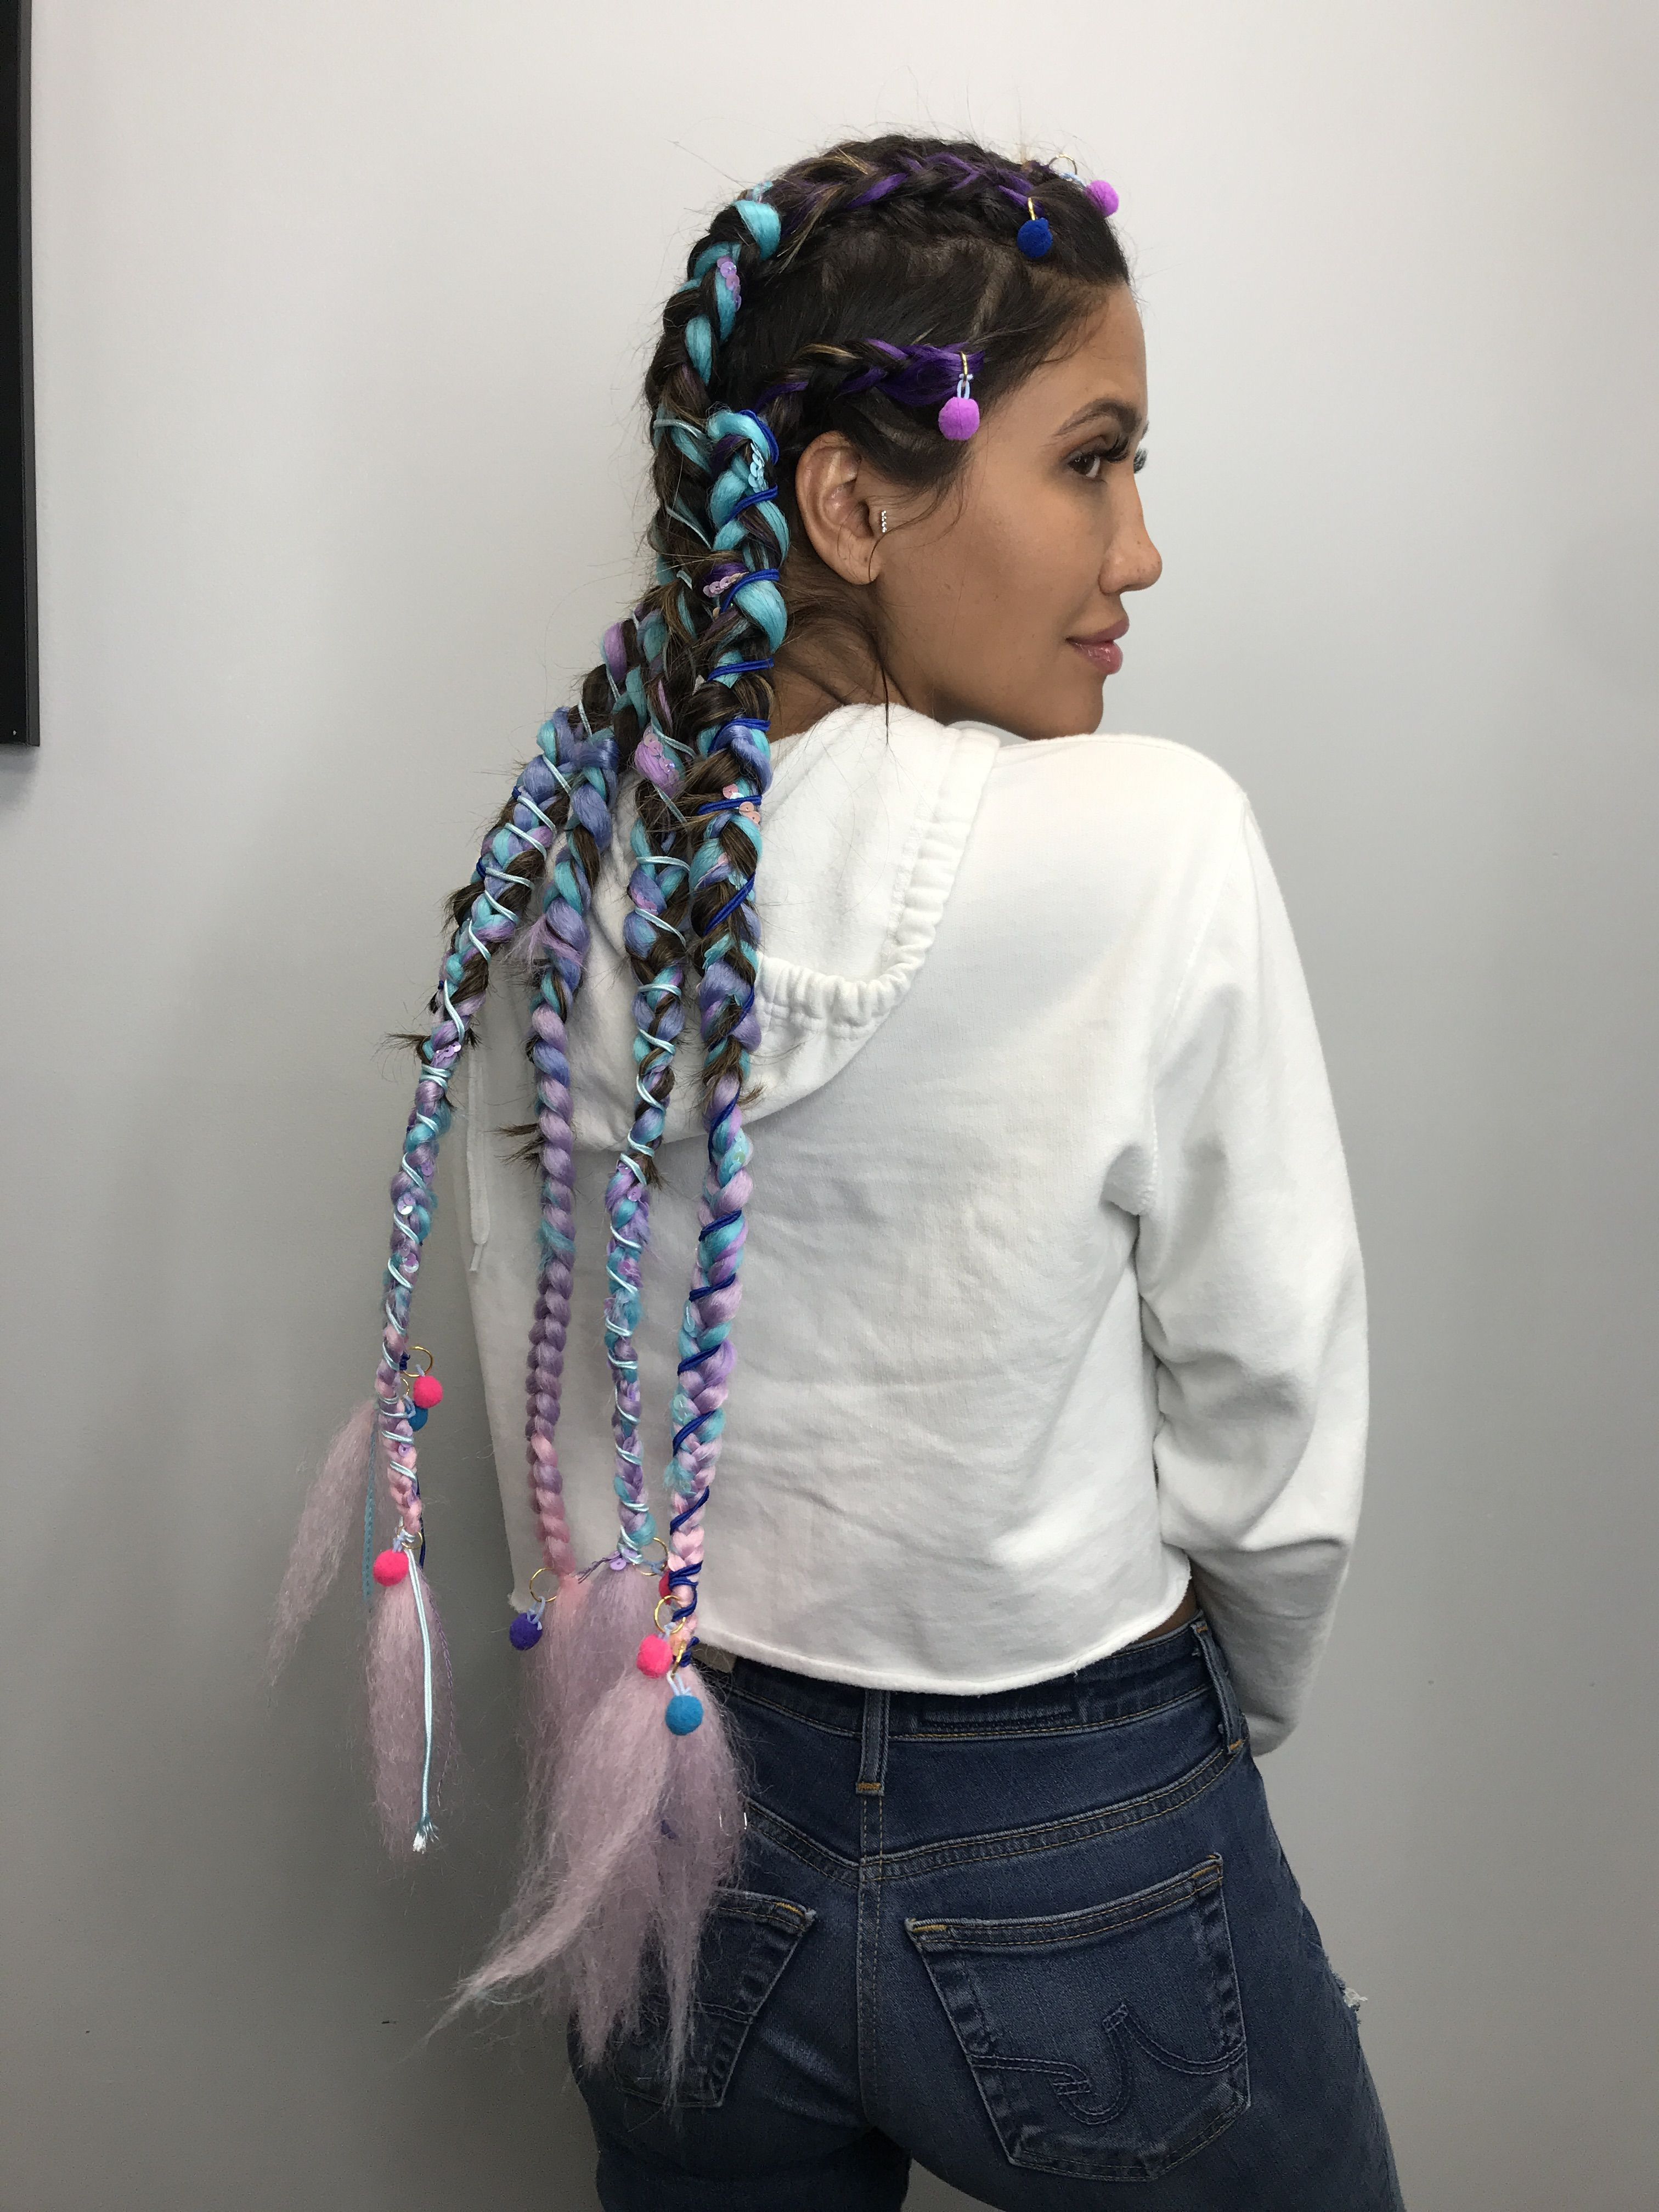 Festival Coachella Hair Pink Blue Pom Pom Braidstatiana Throughout Most Up To Date Blue Braided Festival Hairstyles (View 11 of 20)